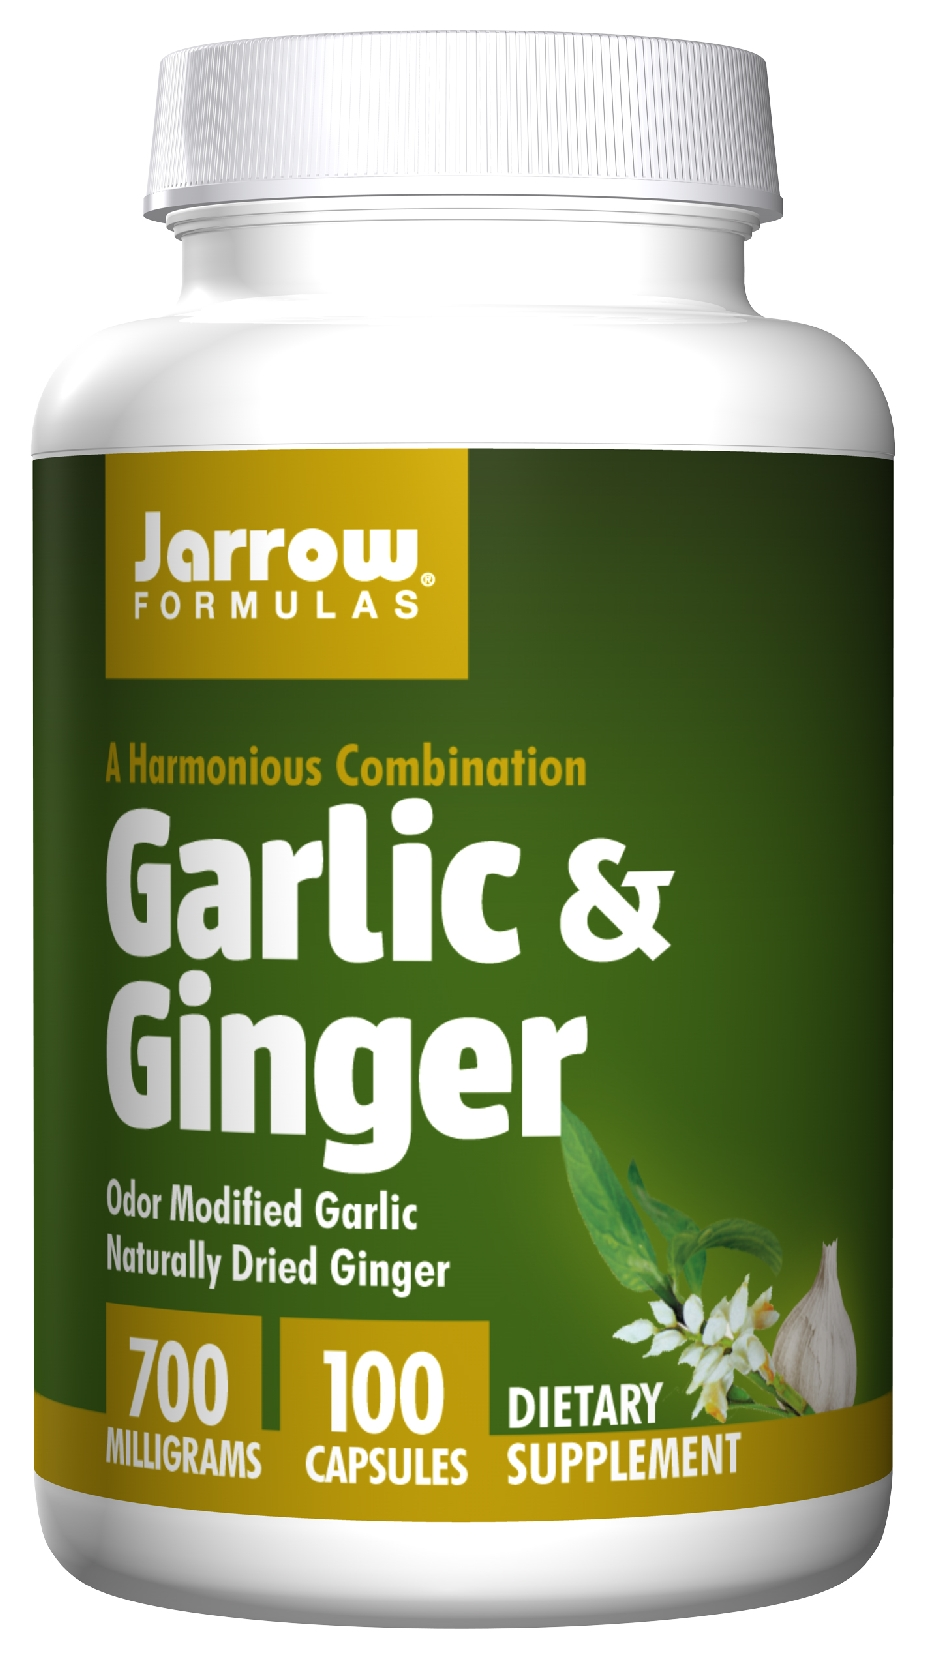 Garlic & Ginger 700 mg 100 caps by Jarrow Formulas